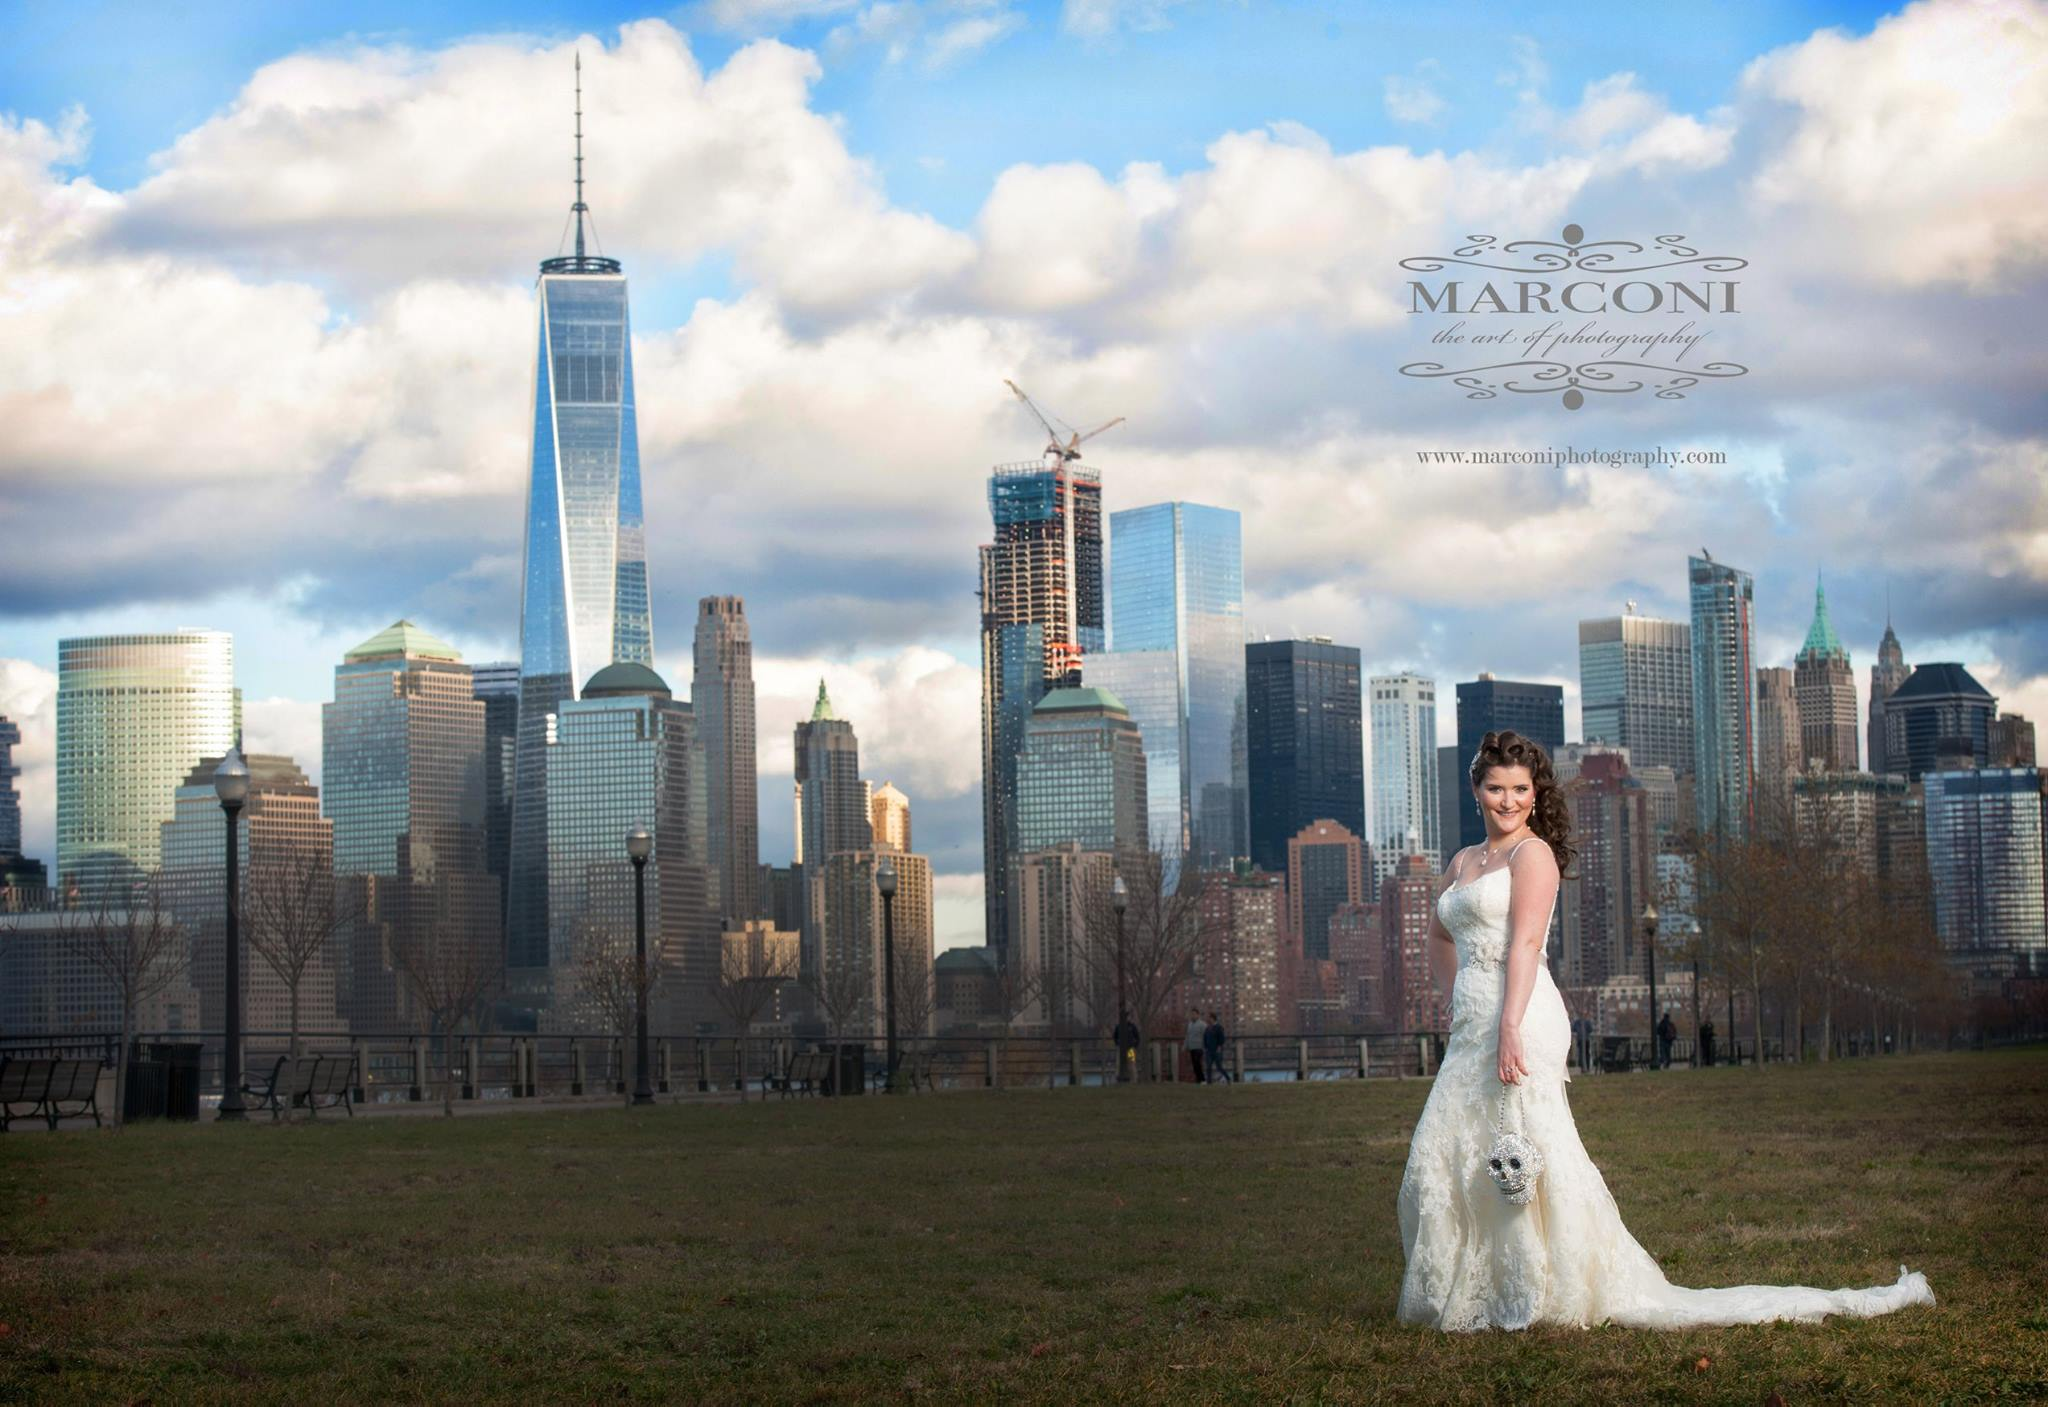 jamie-with-new-york-as-a-backdrop-a-great-shot-taken-by-chris-marconi